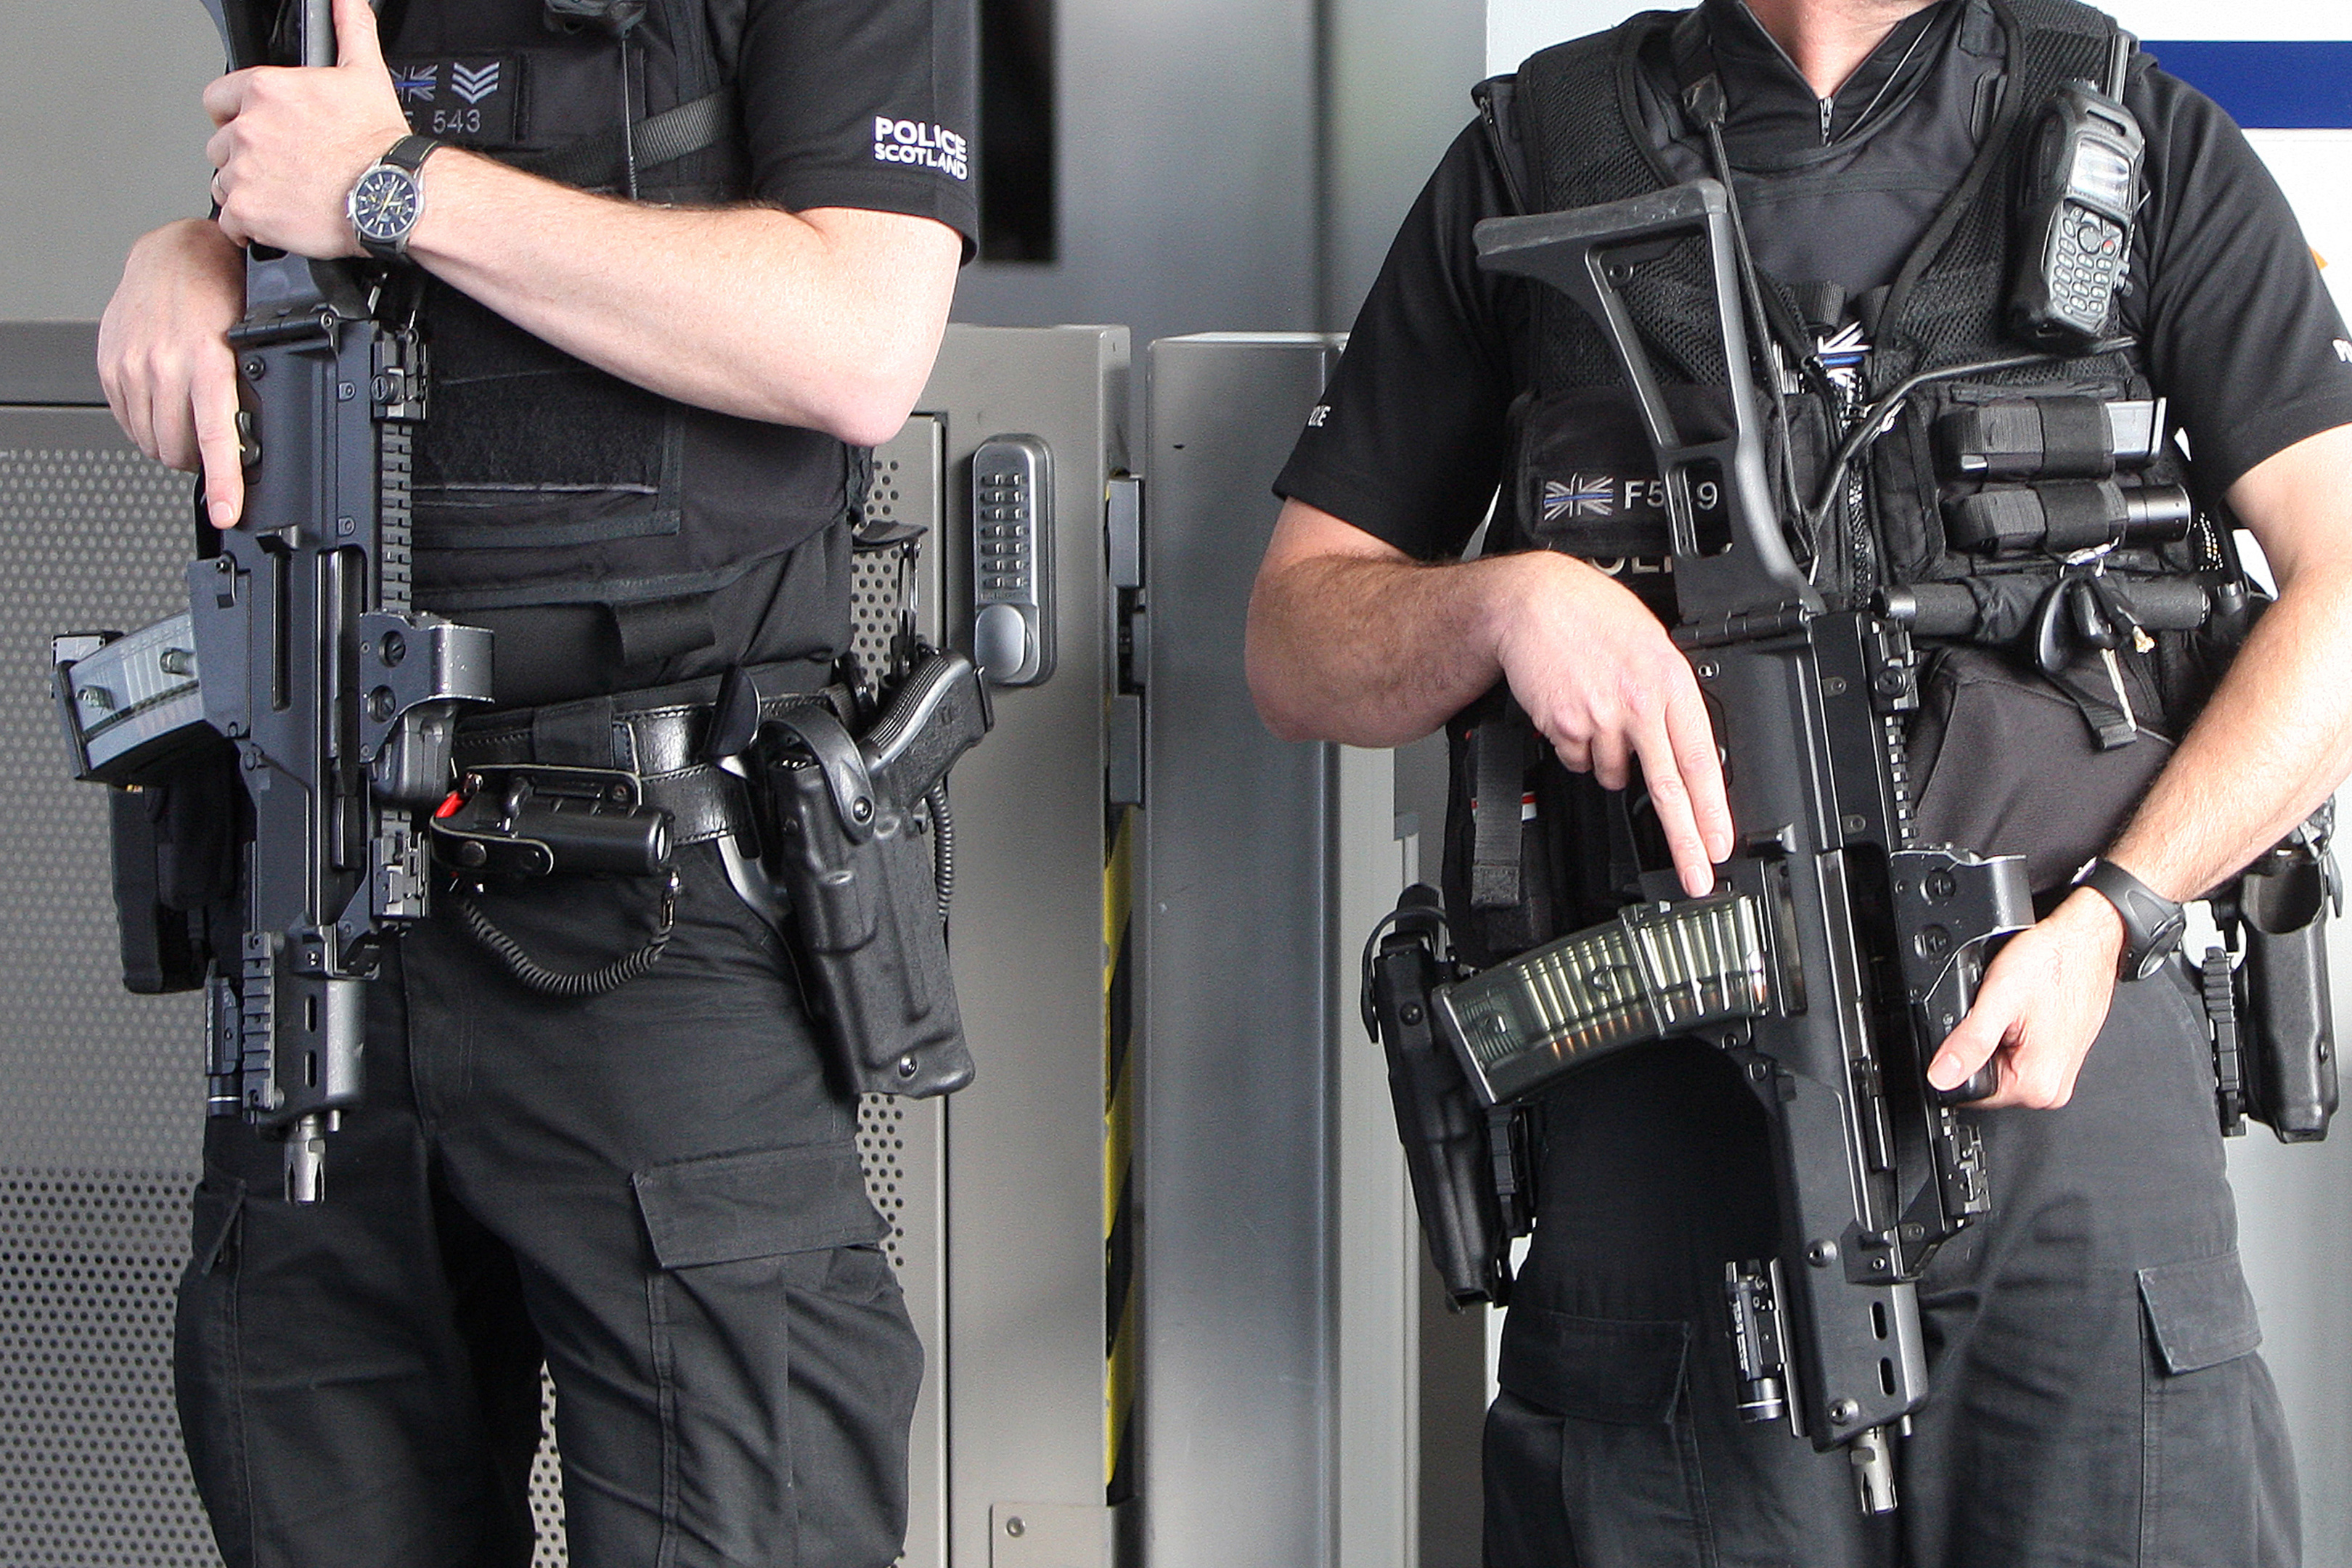 Armed officers in Dundee last month.